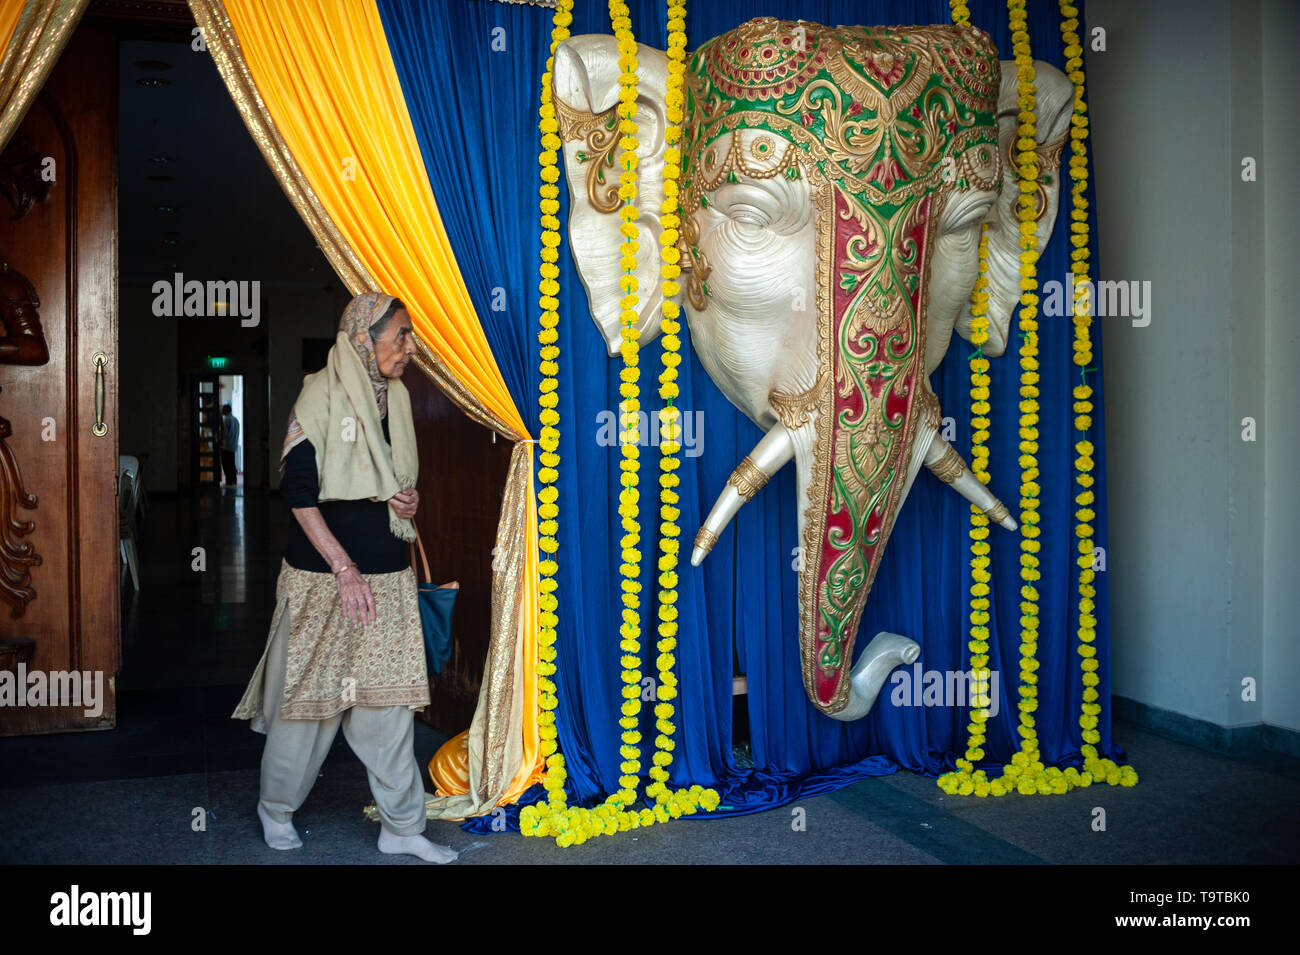 Wedding Elephant High Resolution Stock Photography And Images Alamy Wedding invitation card wedding anniversary wedding wedding industry wedding invitation wedding reception wedding ceremony supply wedding planner wedding dress. https www alamy com 15032019 singapore republic of singapore asia the head of a holy elephant is used as decoration for an upcoming indian wedding ceremony image247013060 html